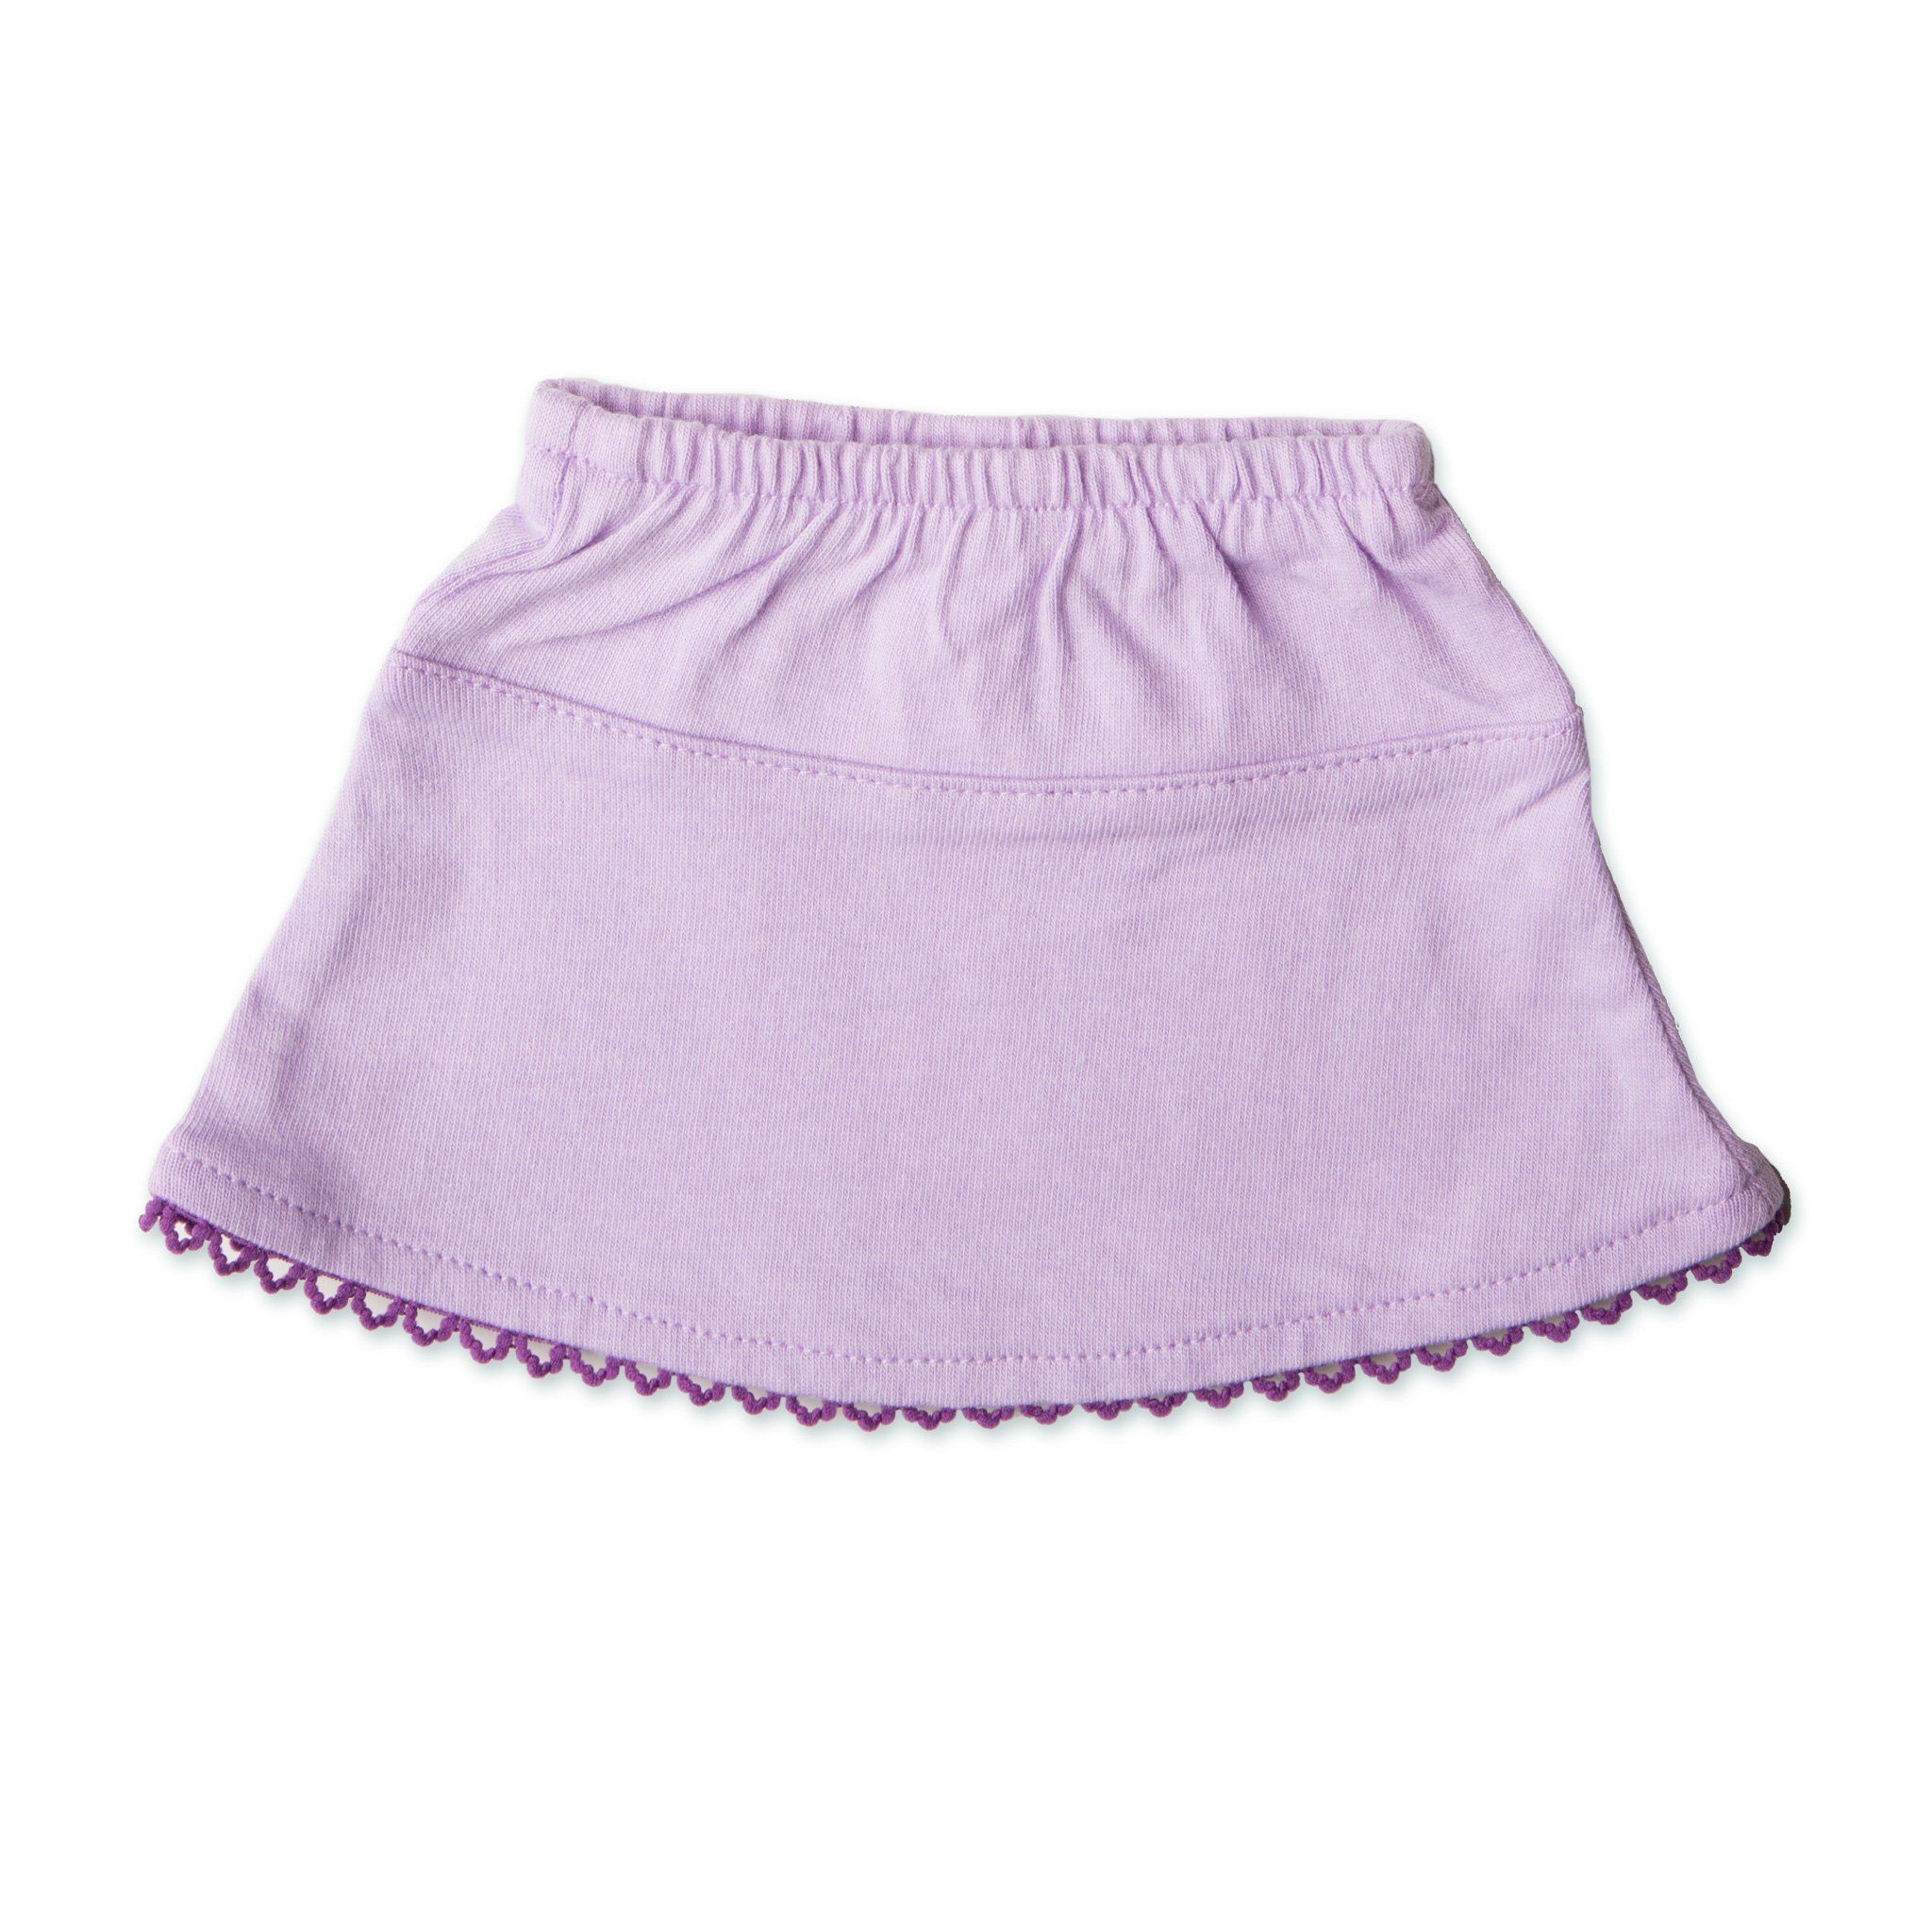 Set to Celebrate light purple skirt fits all 18 inch dolls.